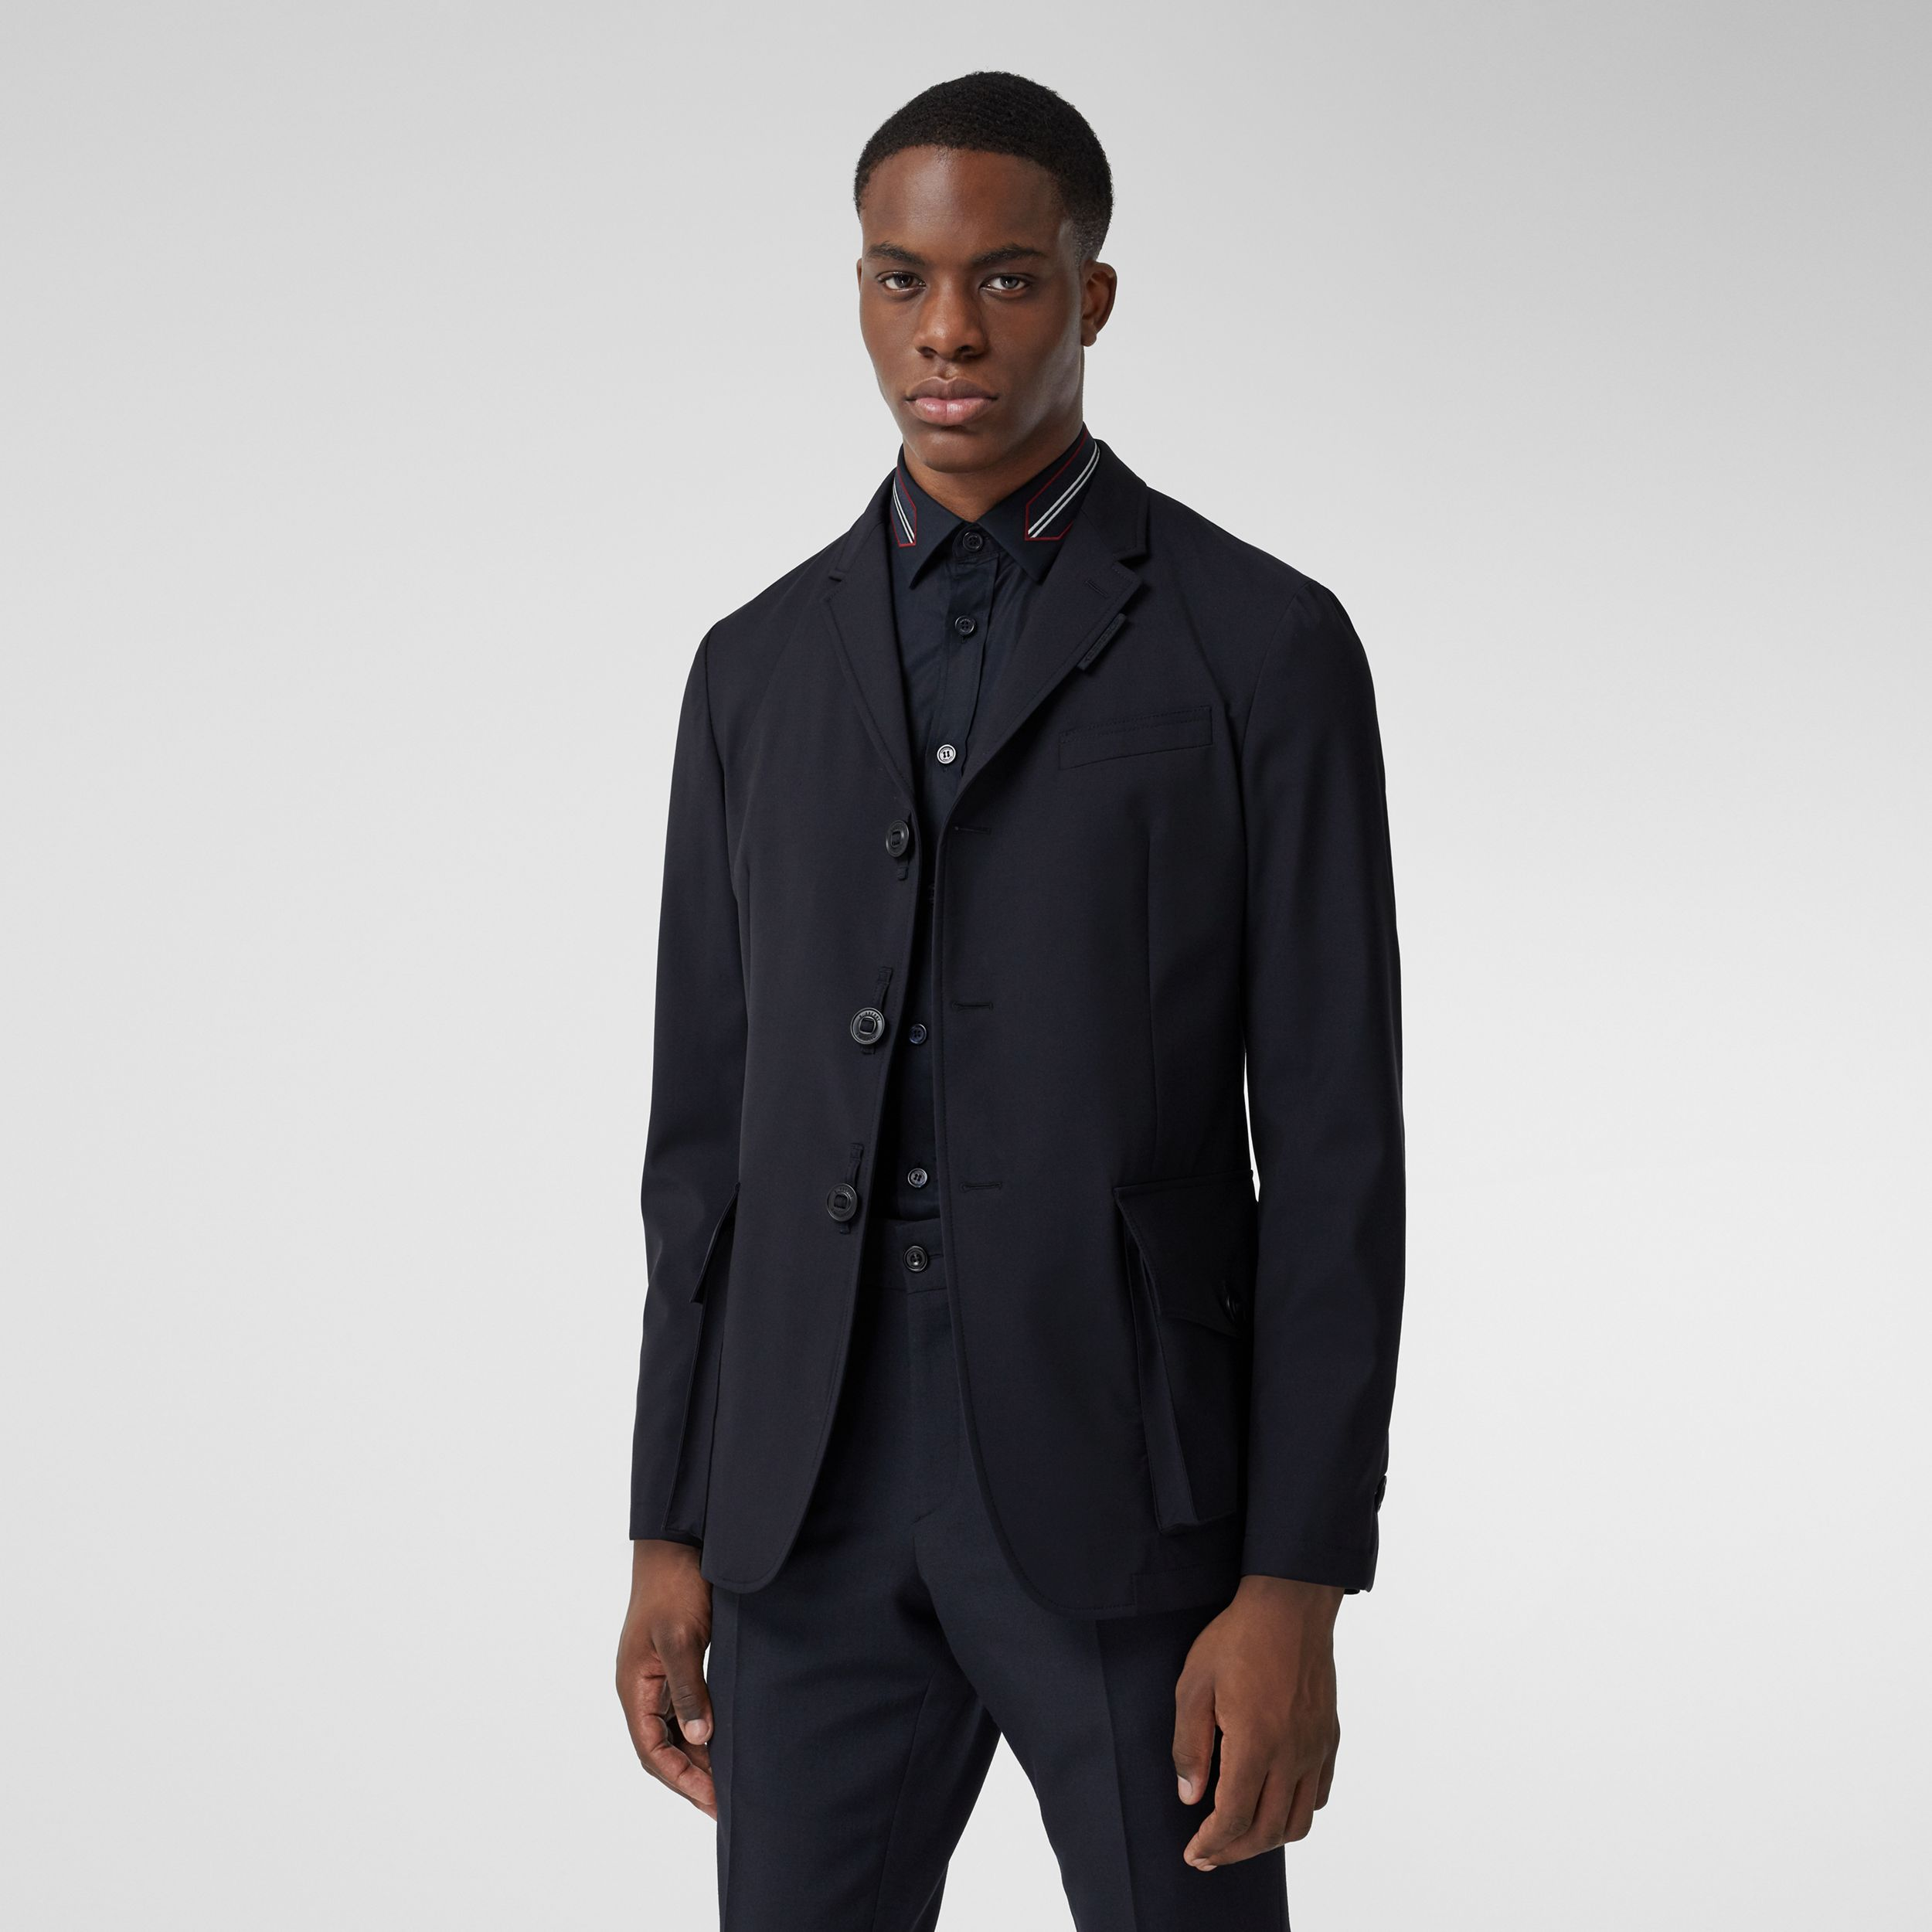 Bonded Wool Tailored Jacket in Navy - Men | Burberry Hong Kong S.A.R. - 1